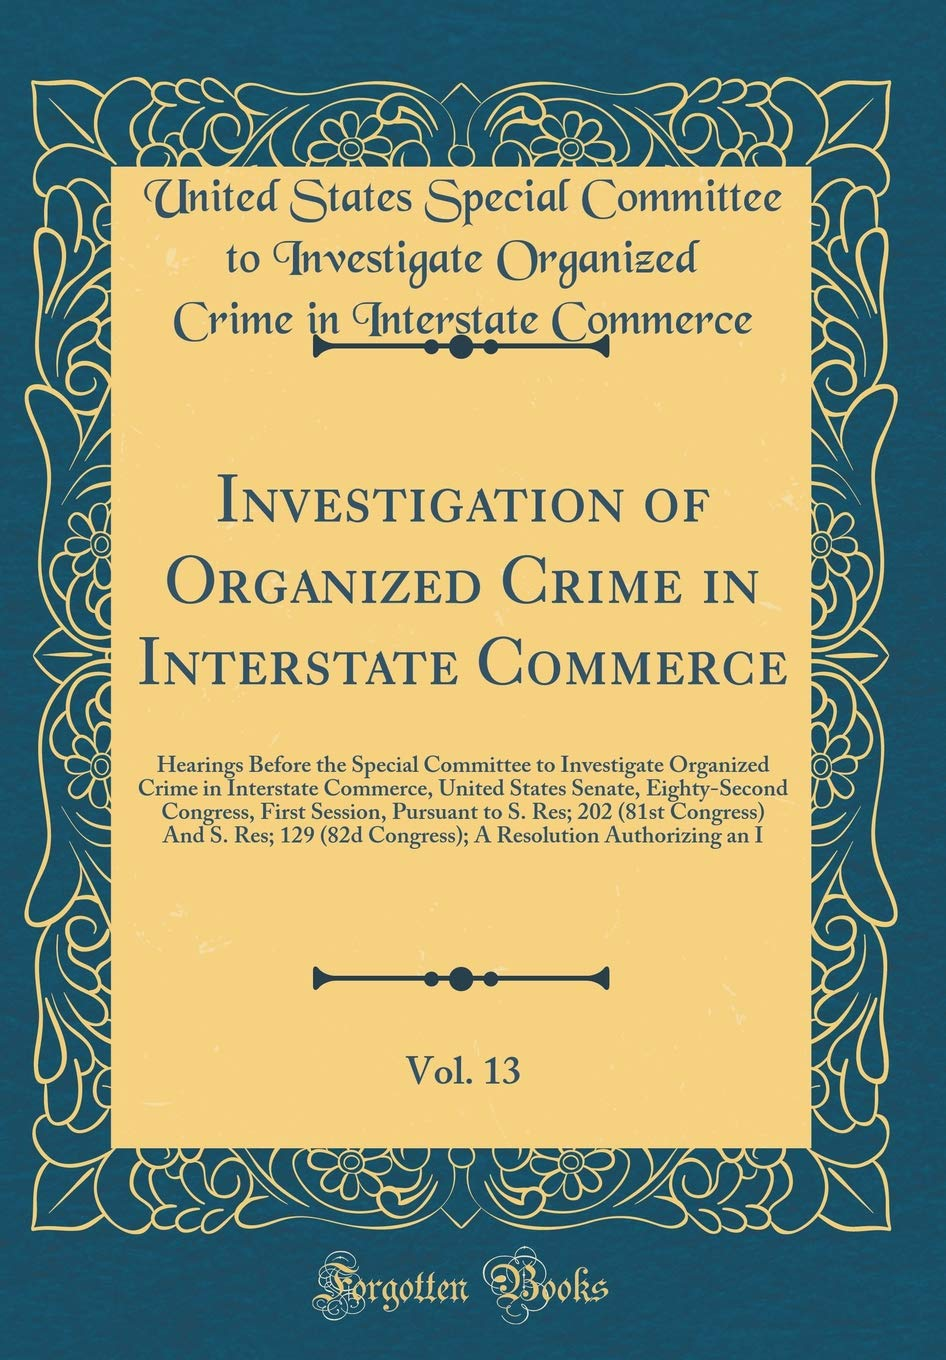 Download Investigation of Organized Crime in Interstate Commerce, Vol. 13: Hearings Before the Special Committee to Investigate Organized Crime in Interstate ... Session, Pursuant to S. Res; 202 (81st Congr ebook